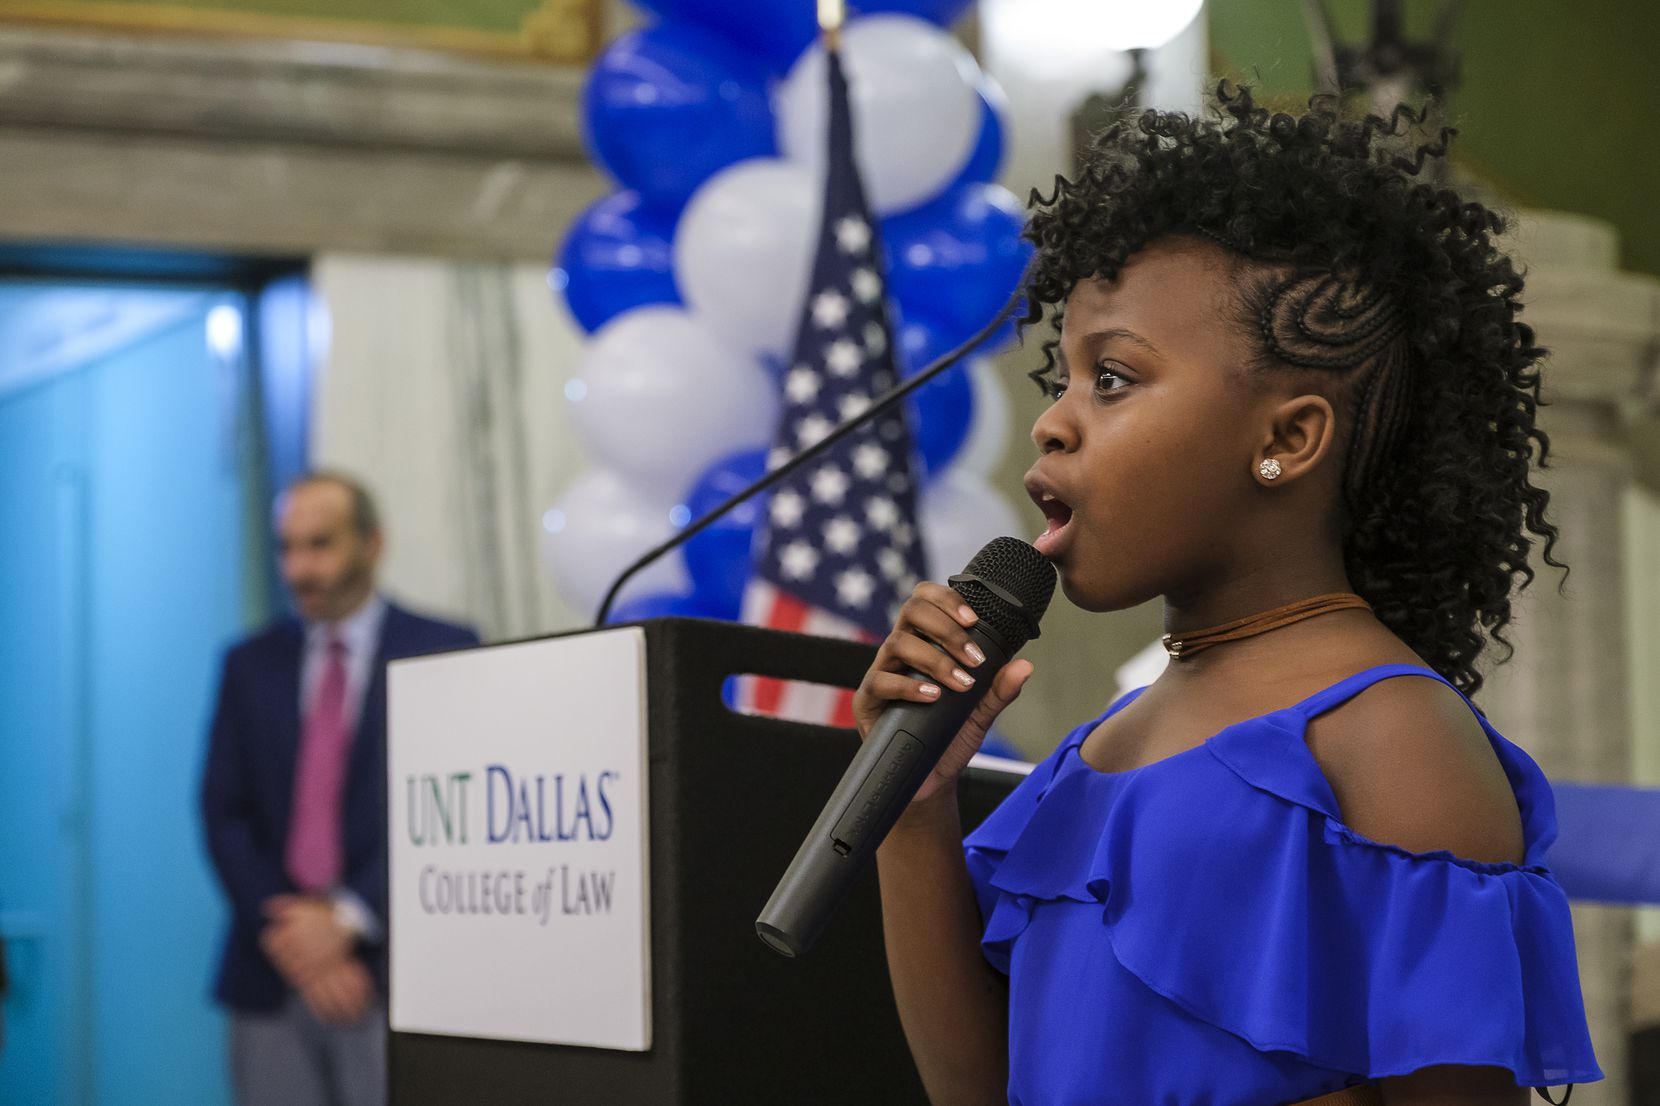 Skye Turner sings the national anthem during a ceremony for the UNT Dallas College of Law in 2019.